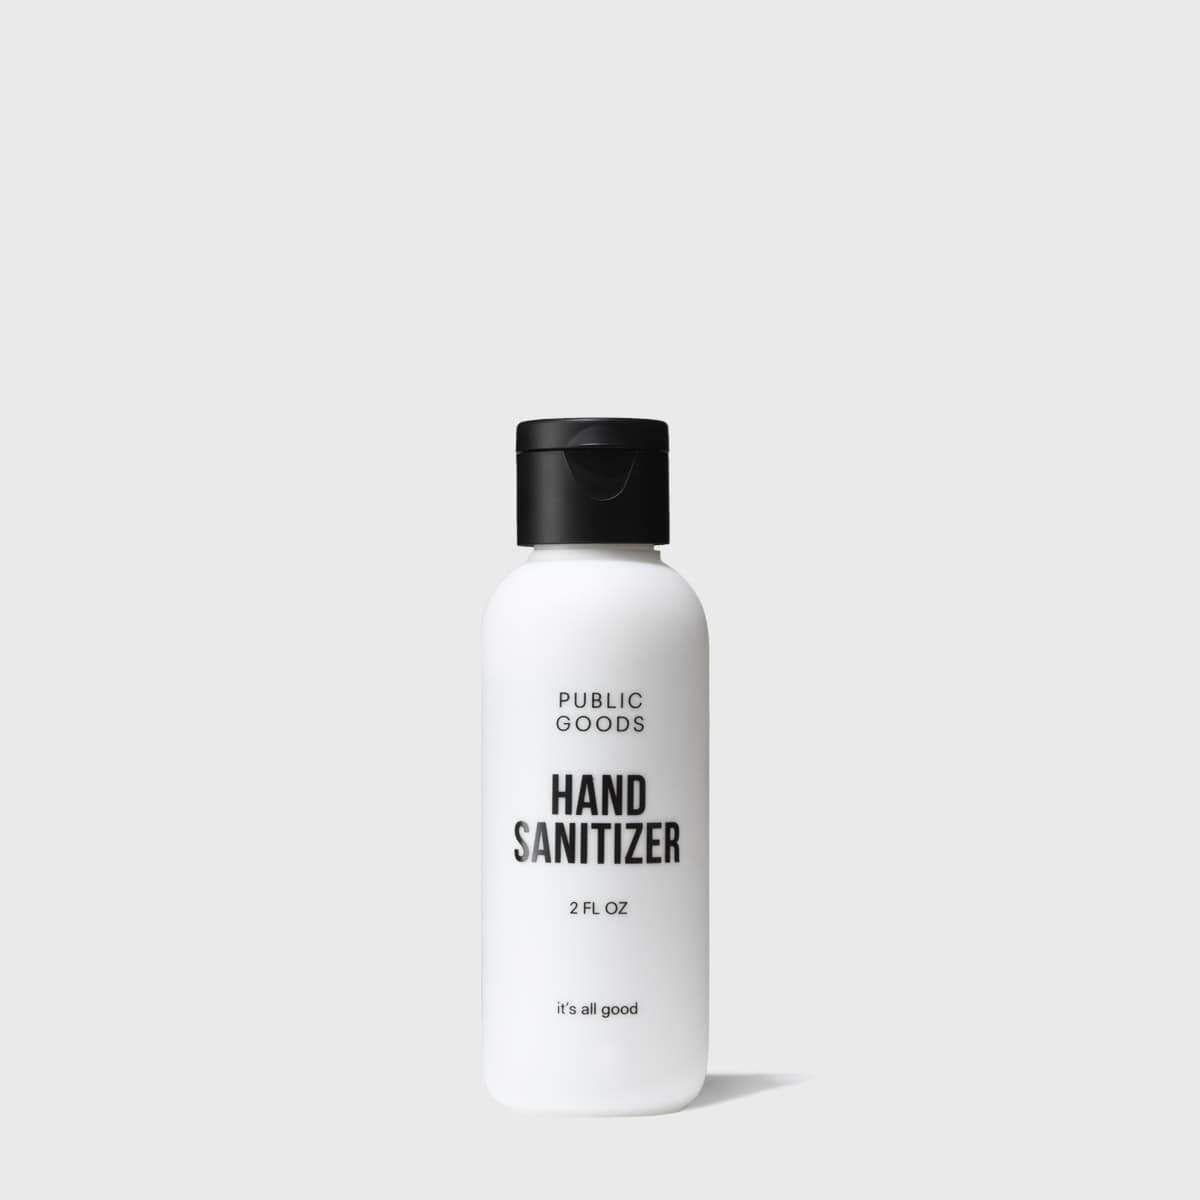 Hand Sanitizer Public Goods Hand Sanitizer Sanitizer Natural